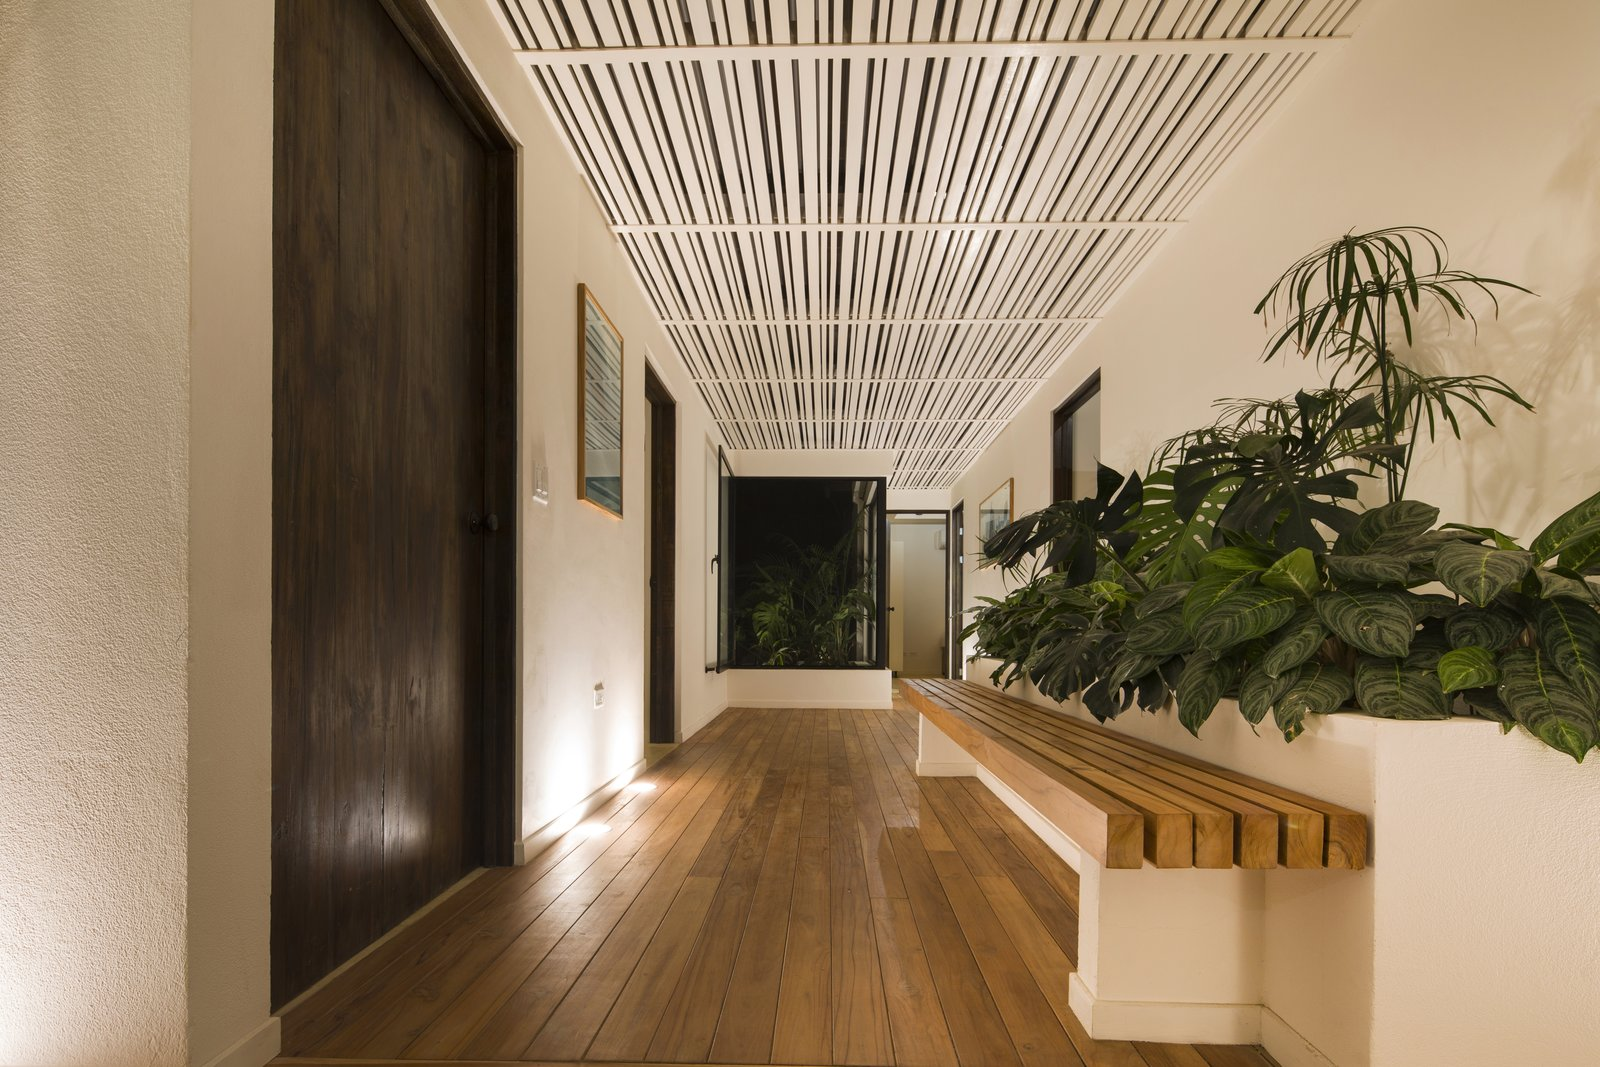 Hallway and Medium Hardwood Floor Slatted roofs above connecting walkways allow dappled light to fall below while framing the view out beyond.  Photo 9 of 11 in Decompress at This Boutique Hotel and Yoga Retreat in the Costa Rican Jungle